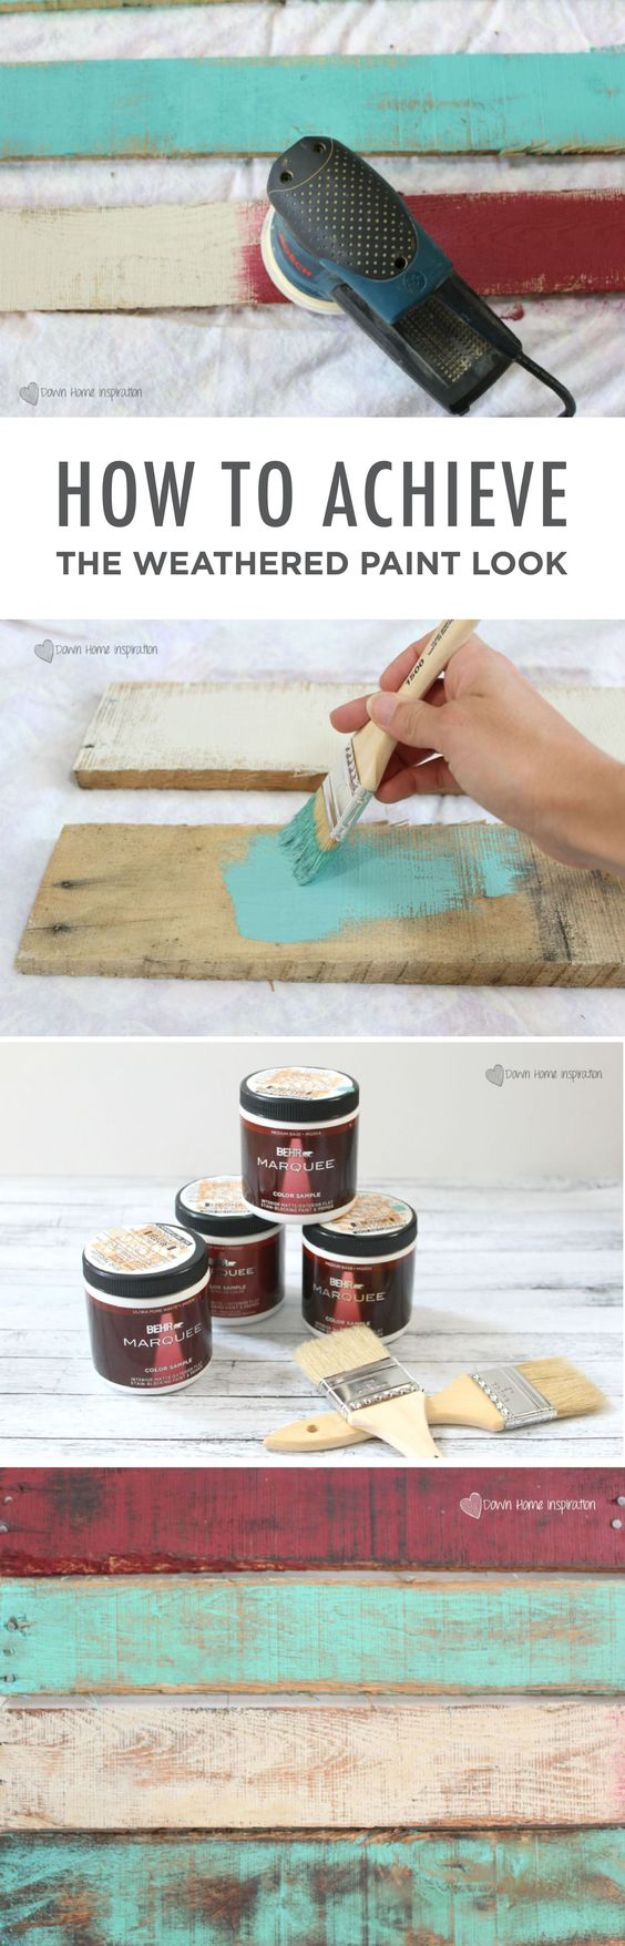 DIY Painting Hacks - Achieve the Weathered Paint Look - Easy Ways To Shortcut House Painting - Wall Prep, Painters Tape, Trim, Edging, Ceiling, Exterior Cutting In, Furniture and Crafts Paint Tips - Paint Your House Or Your Room With These Time Saving Painter Hacks and Quick Tricks http://diyjoy.com/diy-painting-hacks